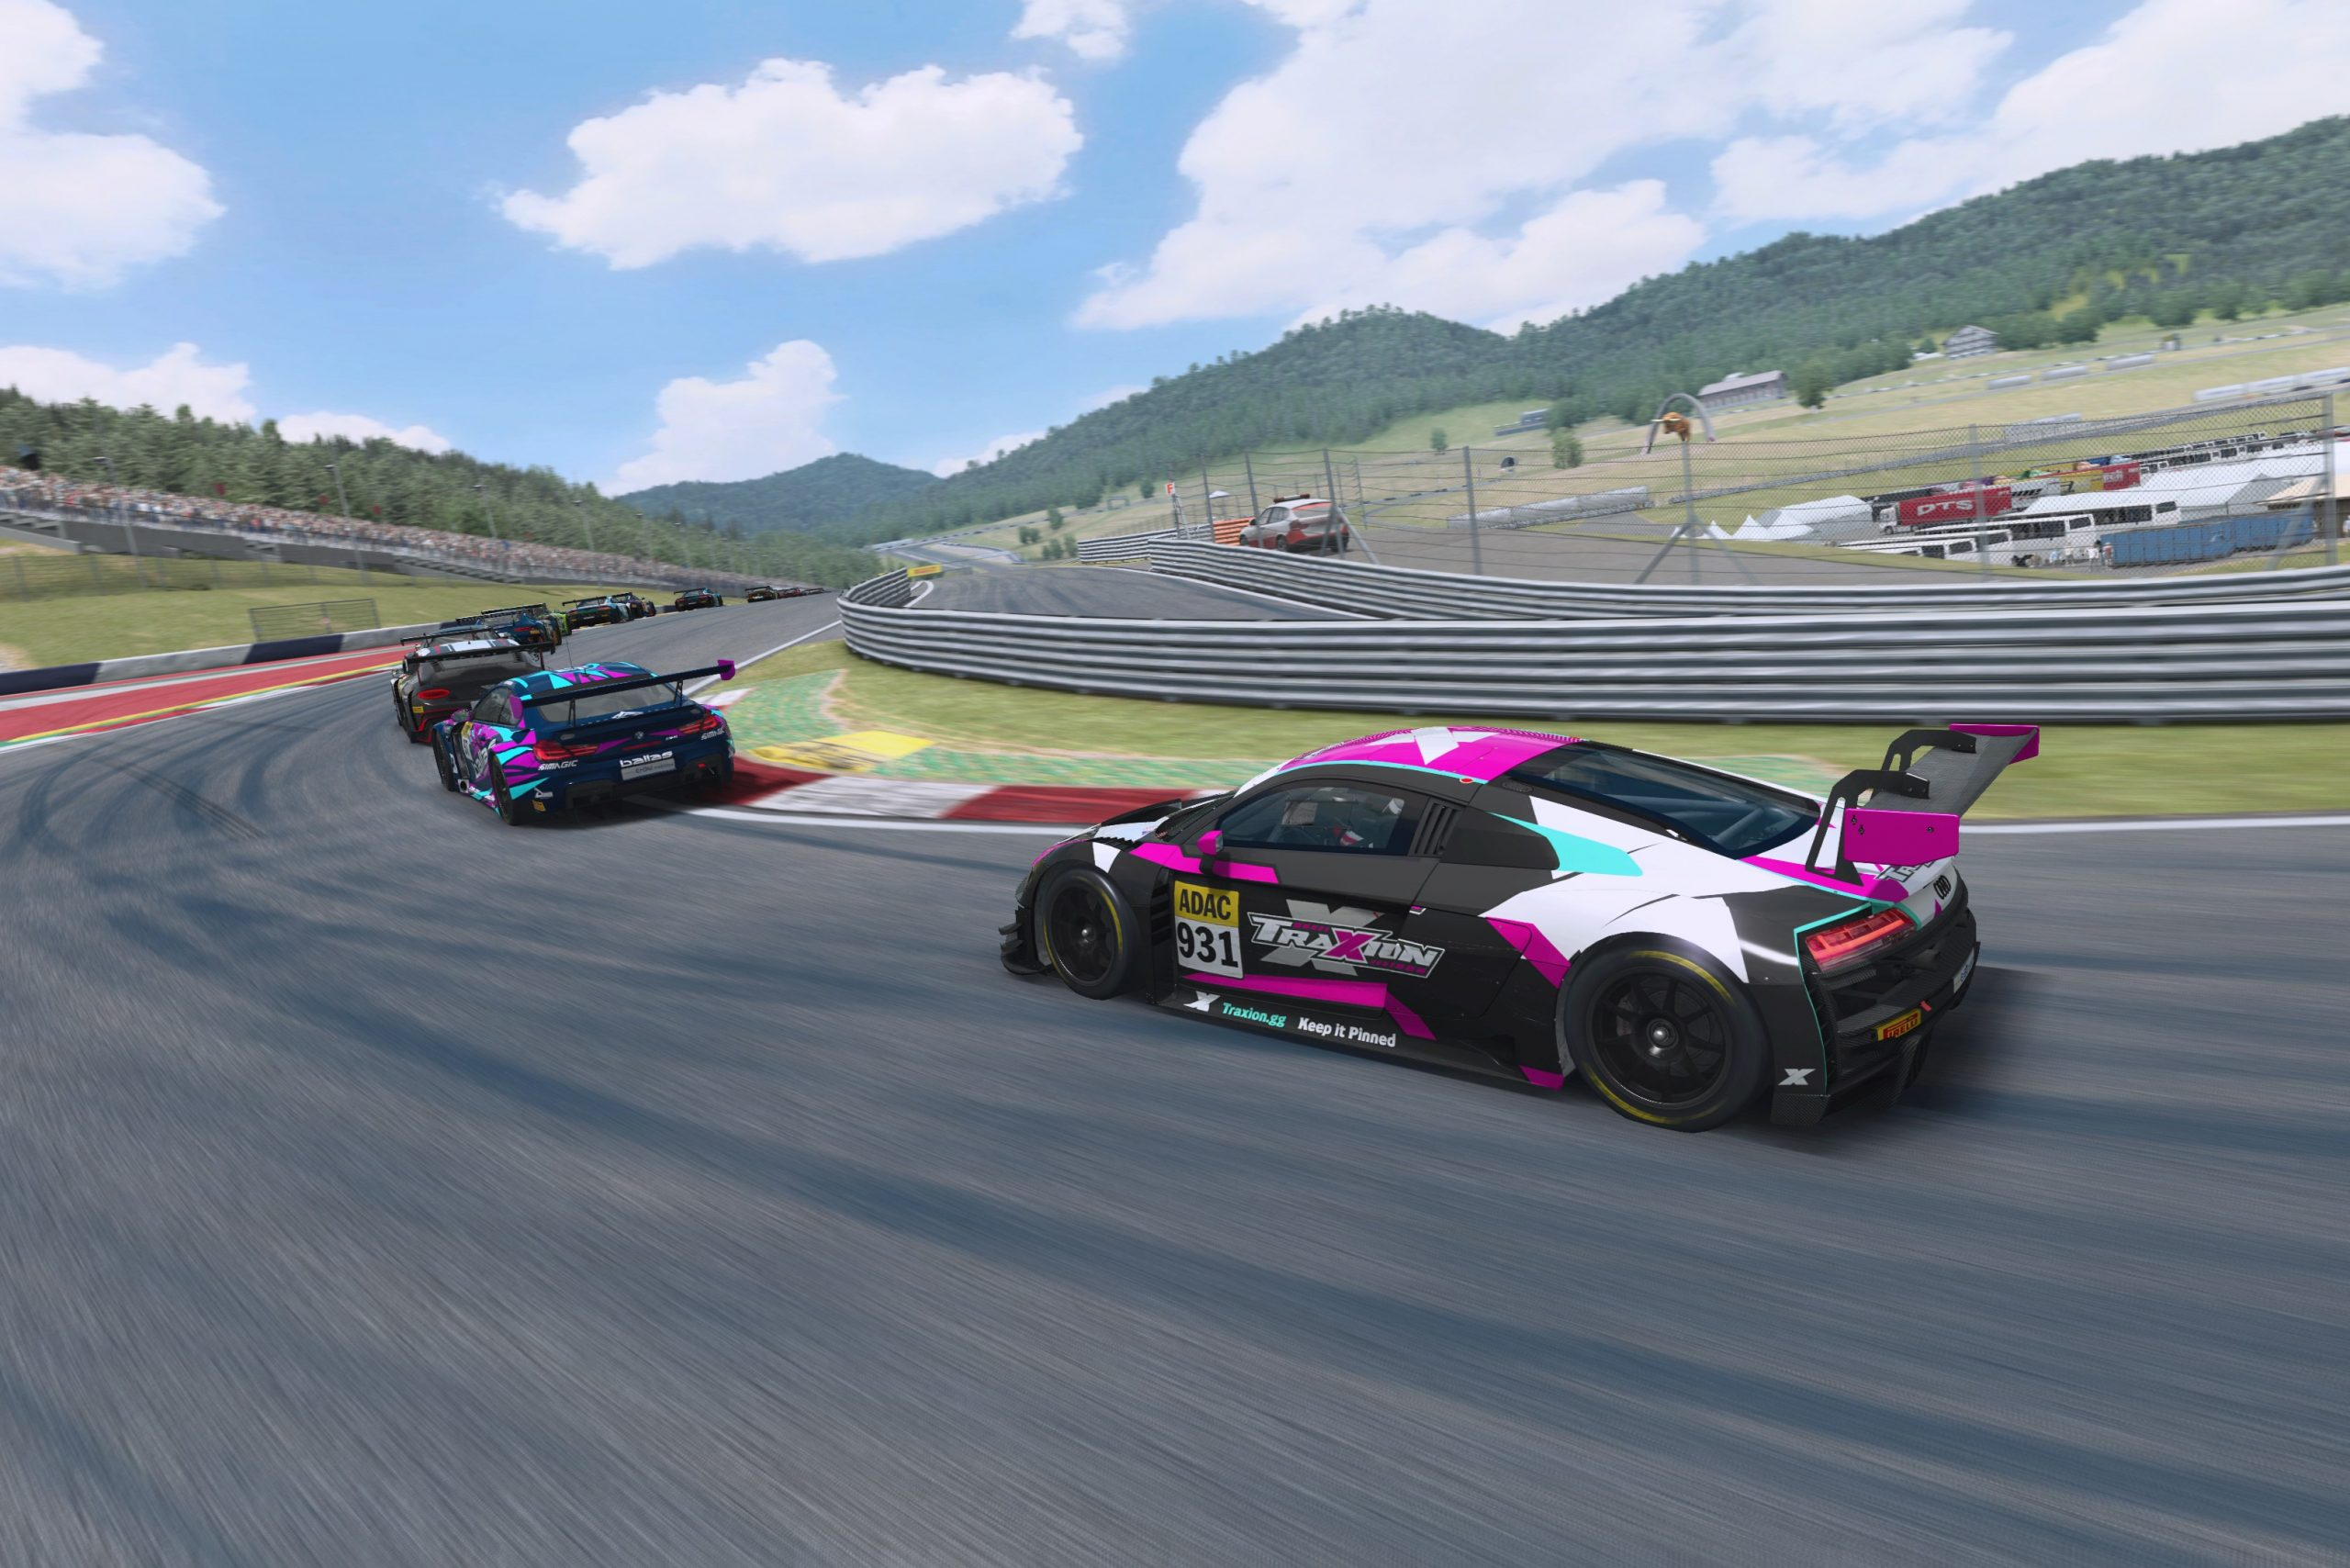 Keithley and Hasse take thrilling ADAC GT Masters Esports victories - Motor Informed